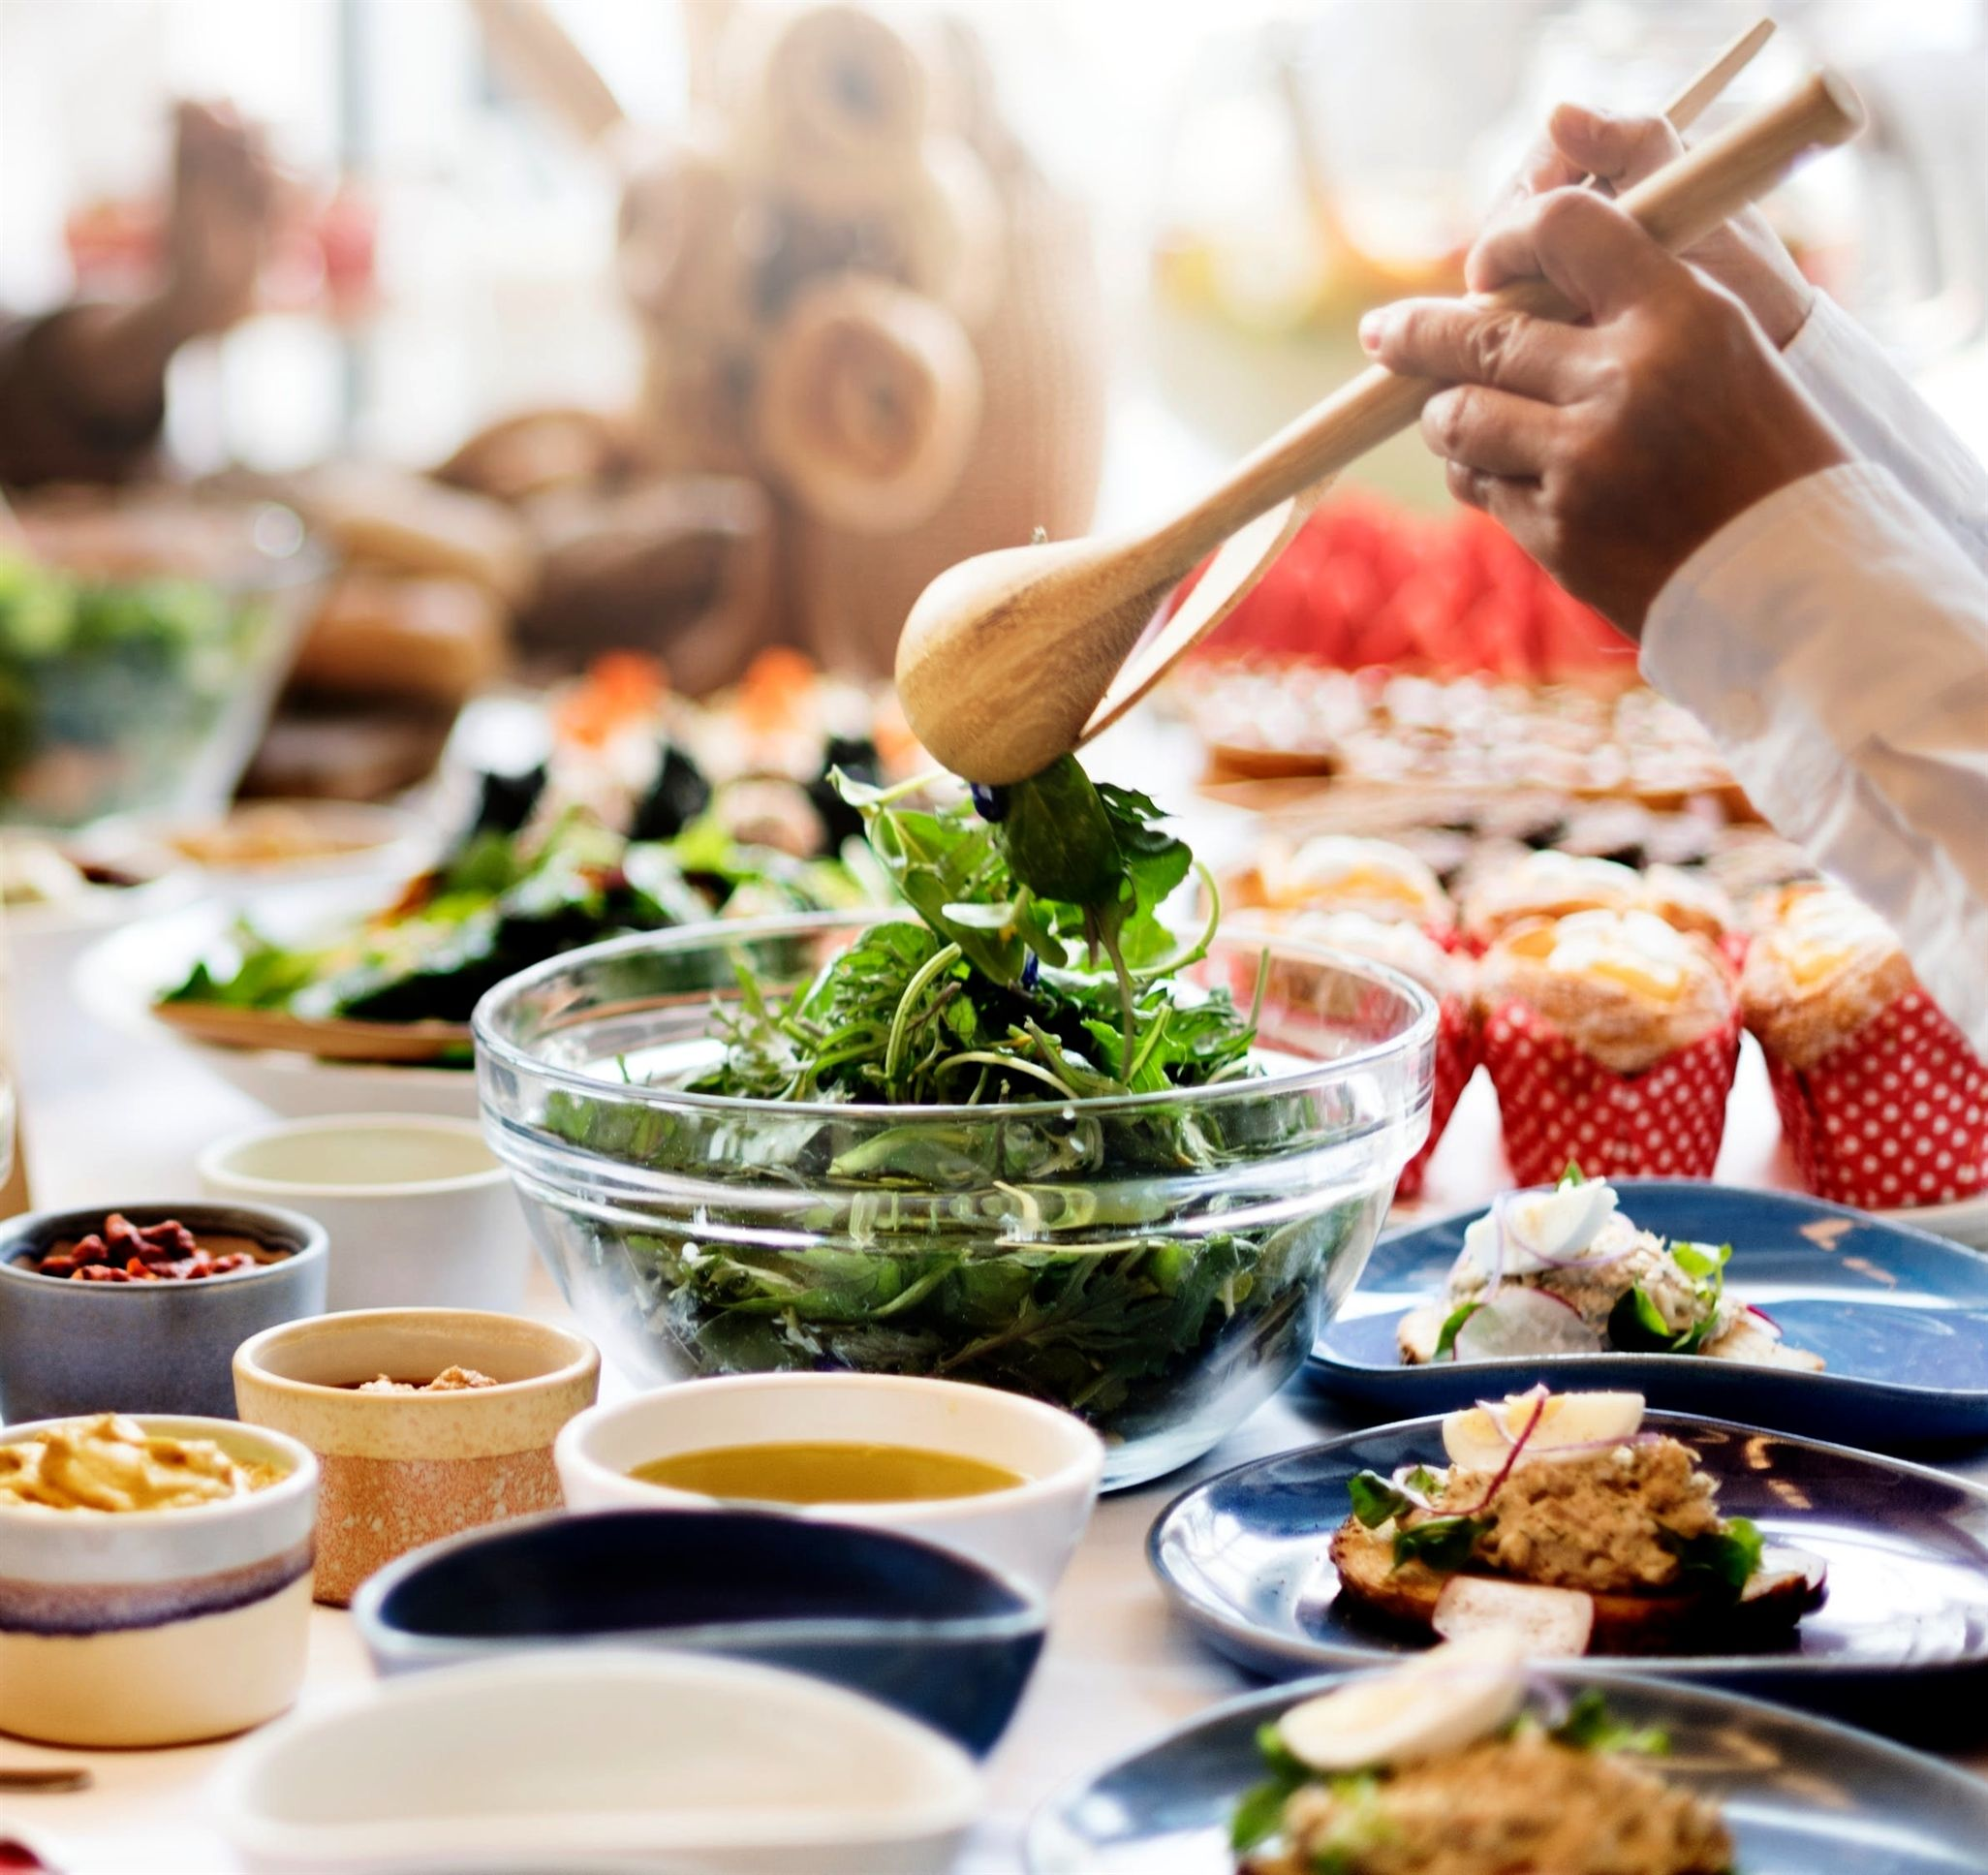 chinese food delivery near me_184_20191129145916_59 food